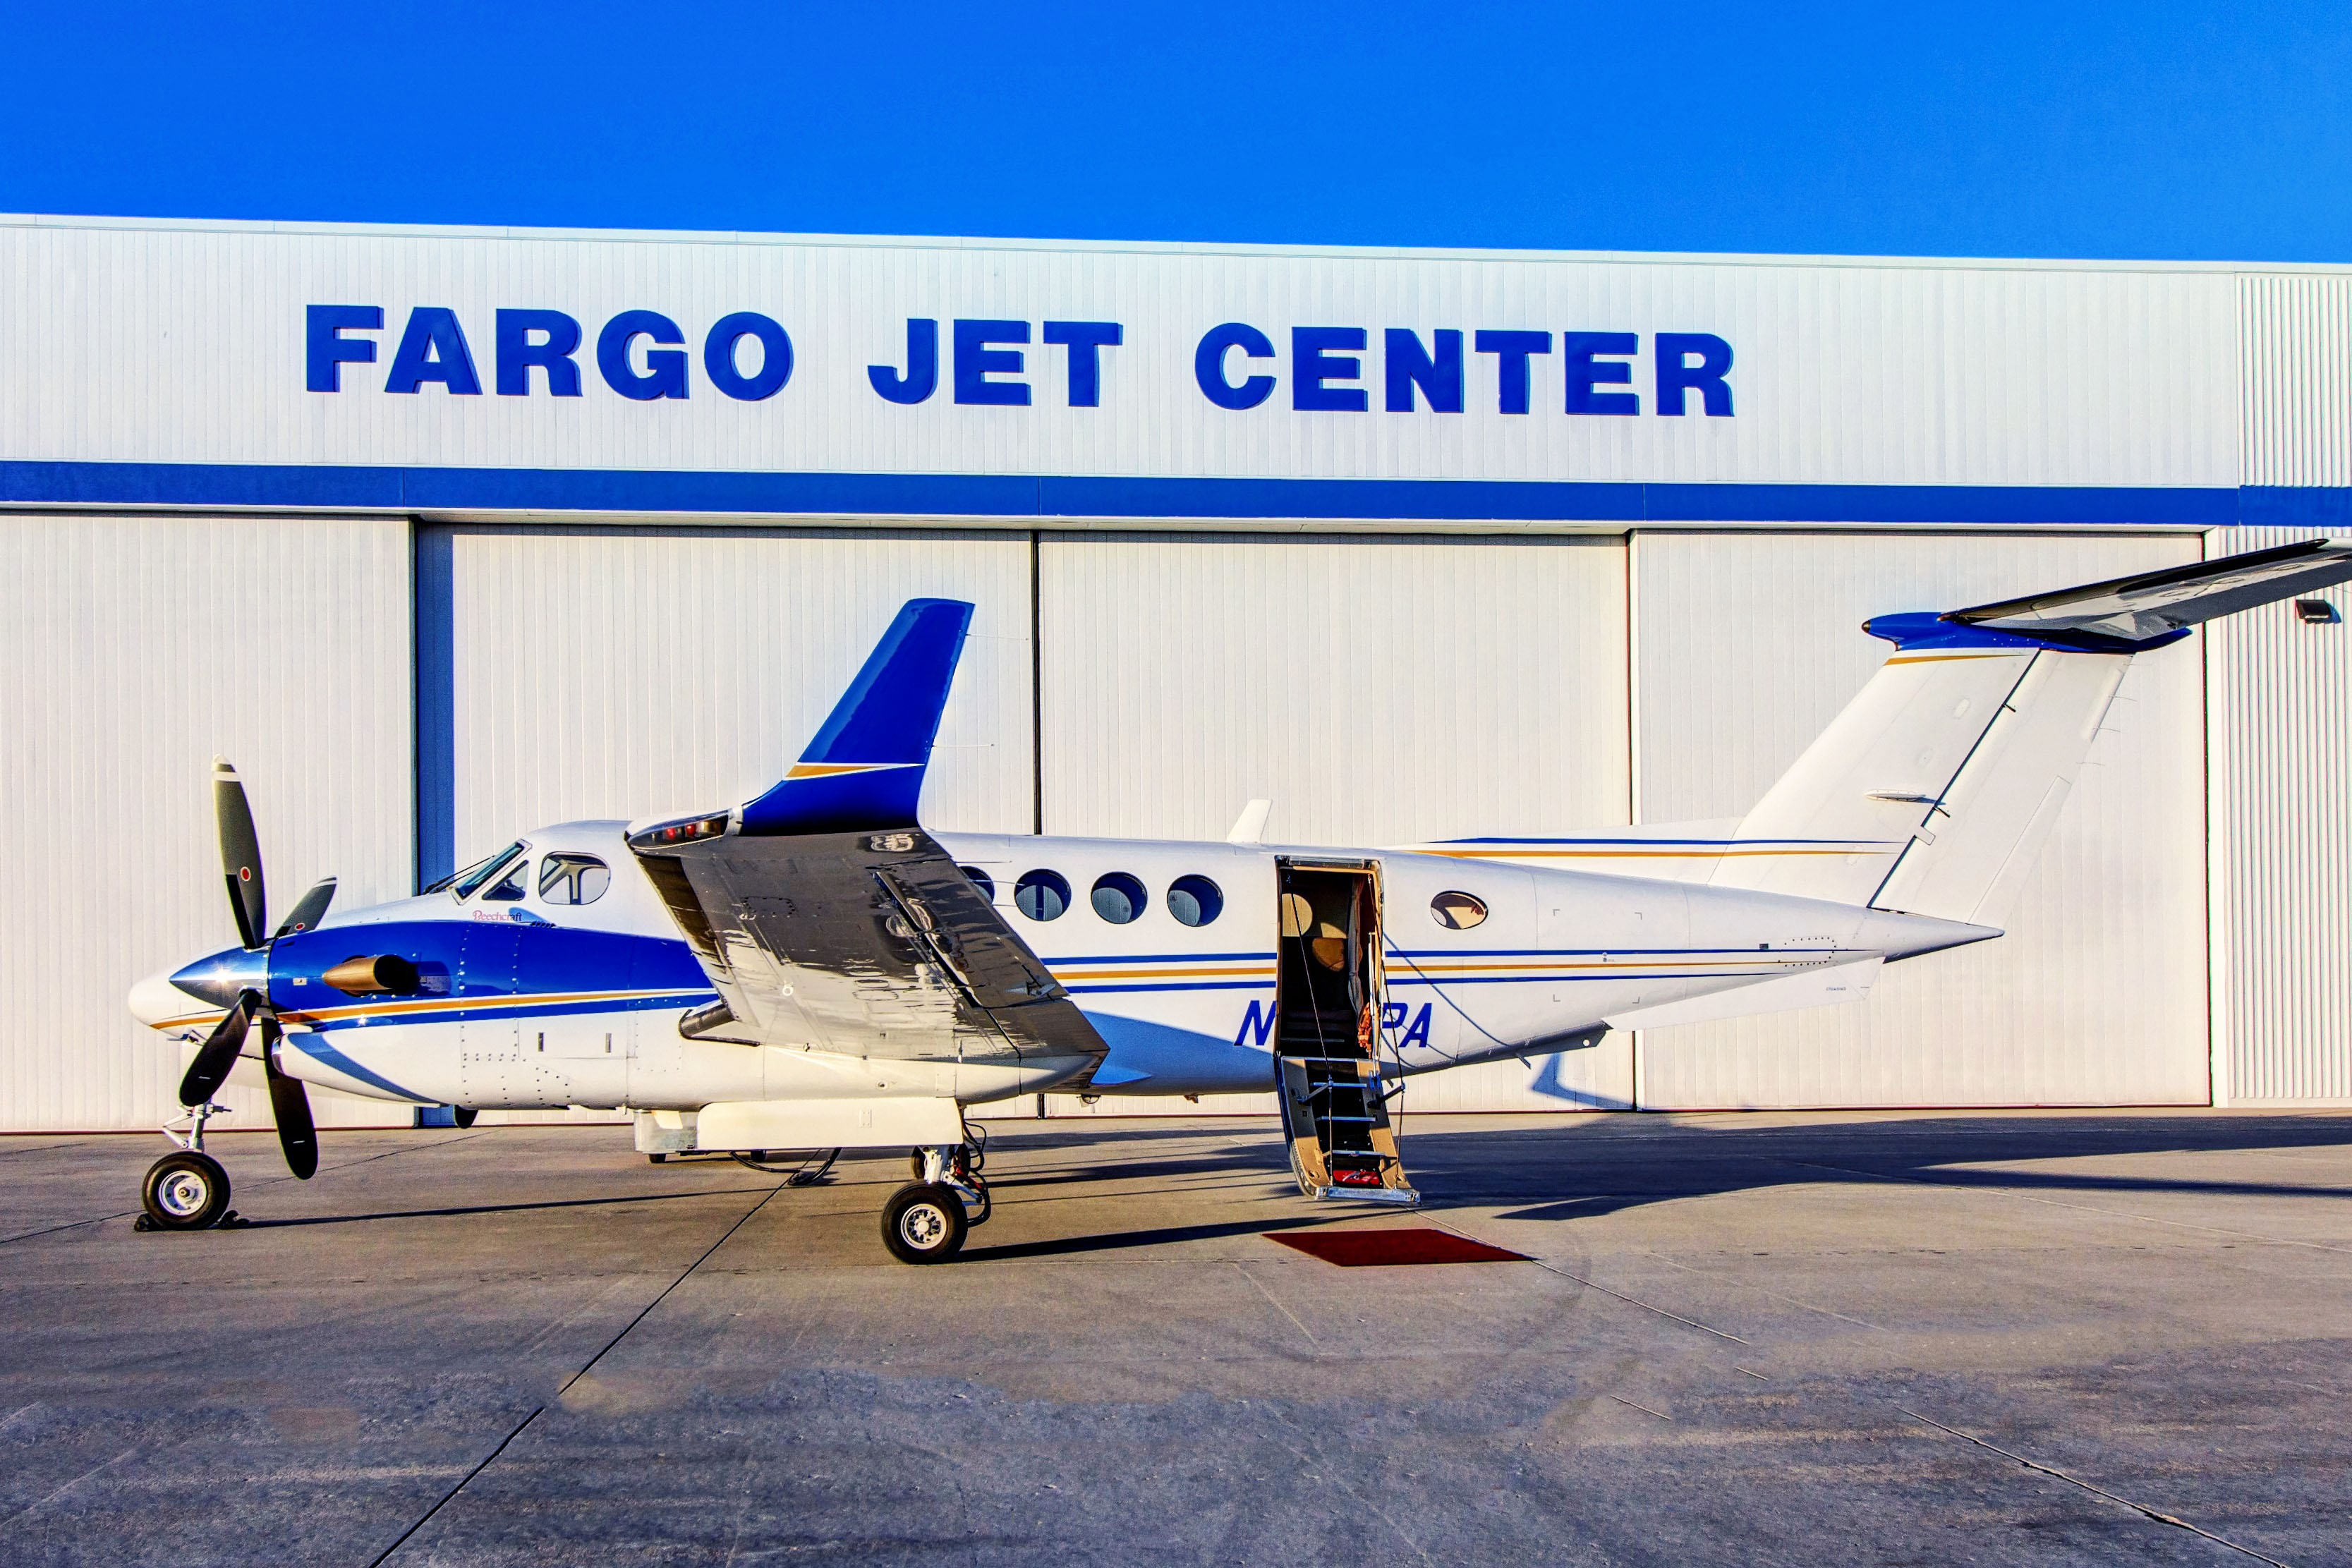 charter-fargo-jet-center-n817pa-king-air-350